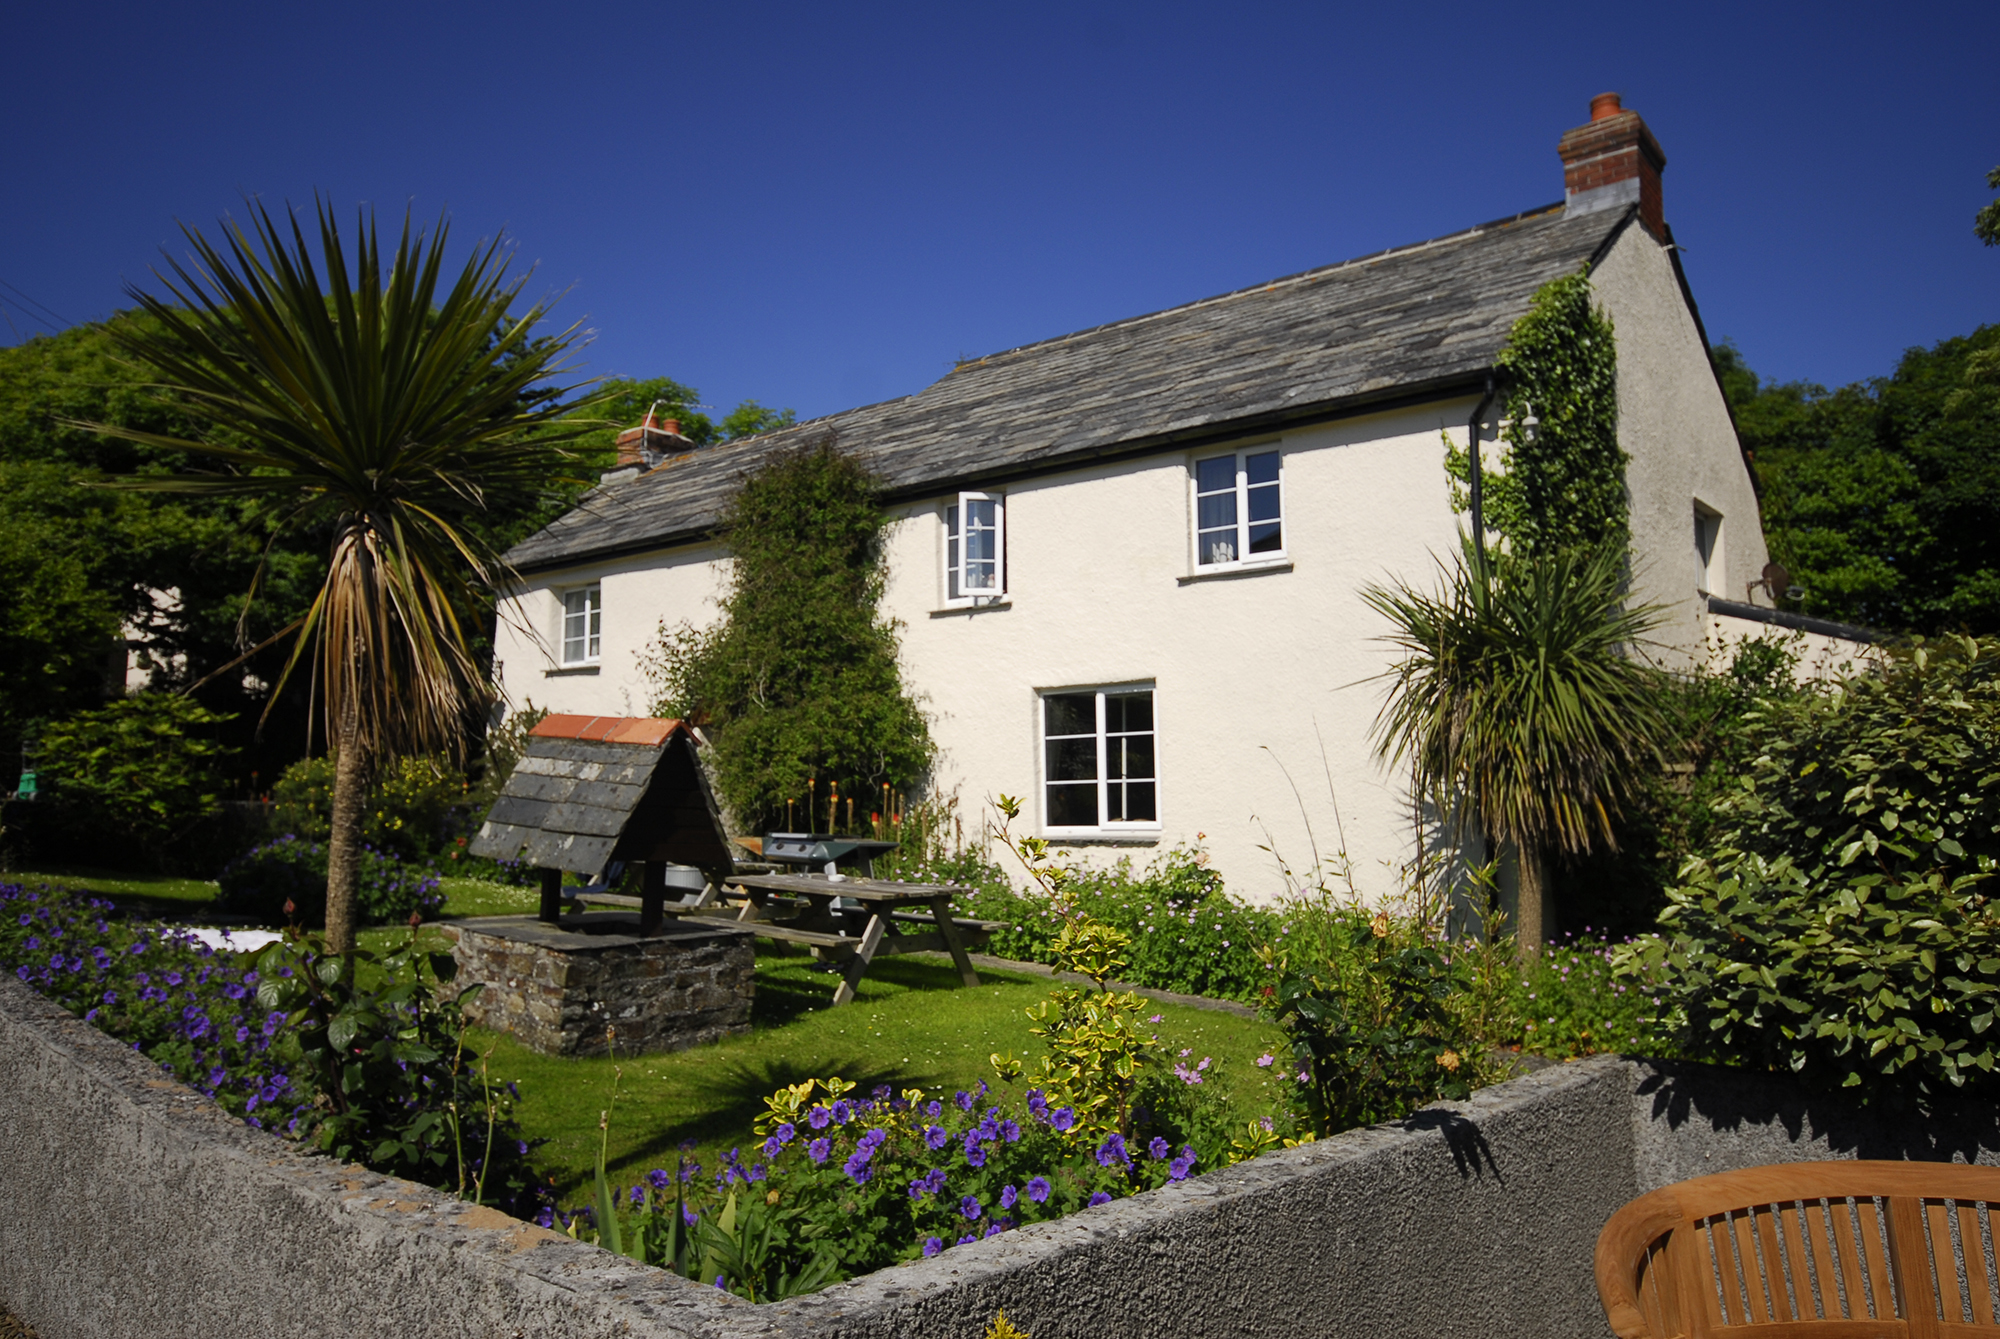 Our largest self catering cottage, the Farmhouse